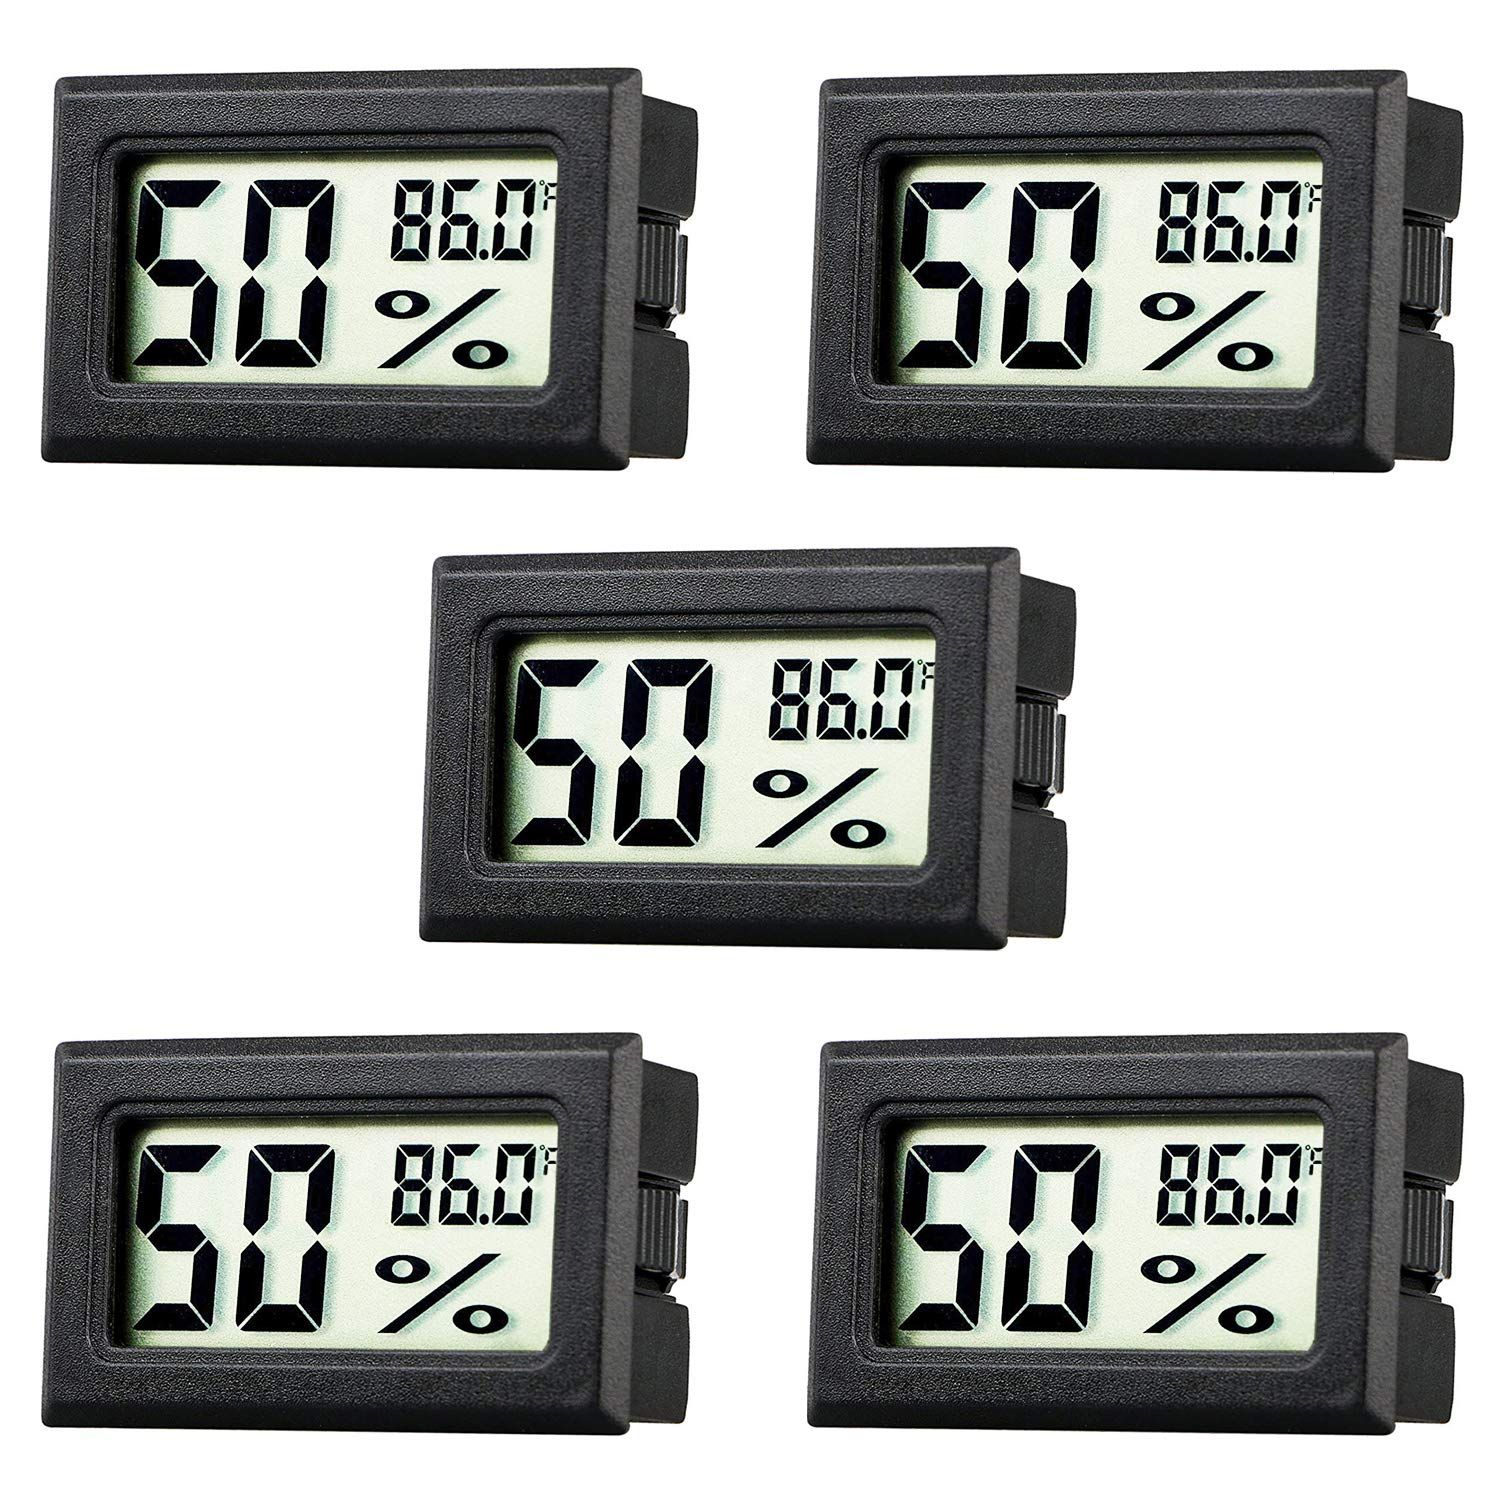 Rojuna 5 Pack Mini Thermometer Hygrometer Small Digital Electronic